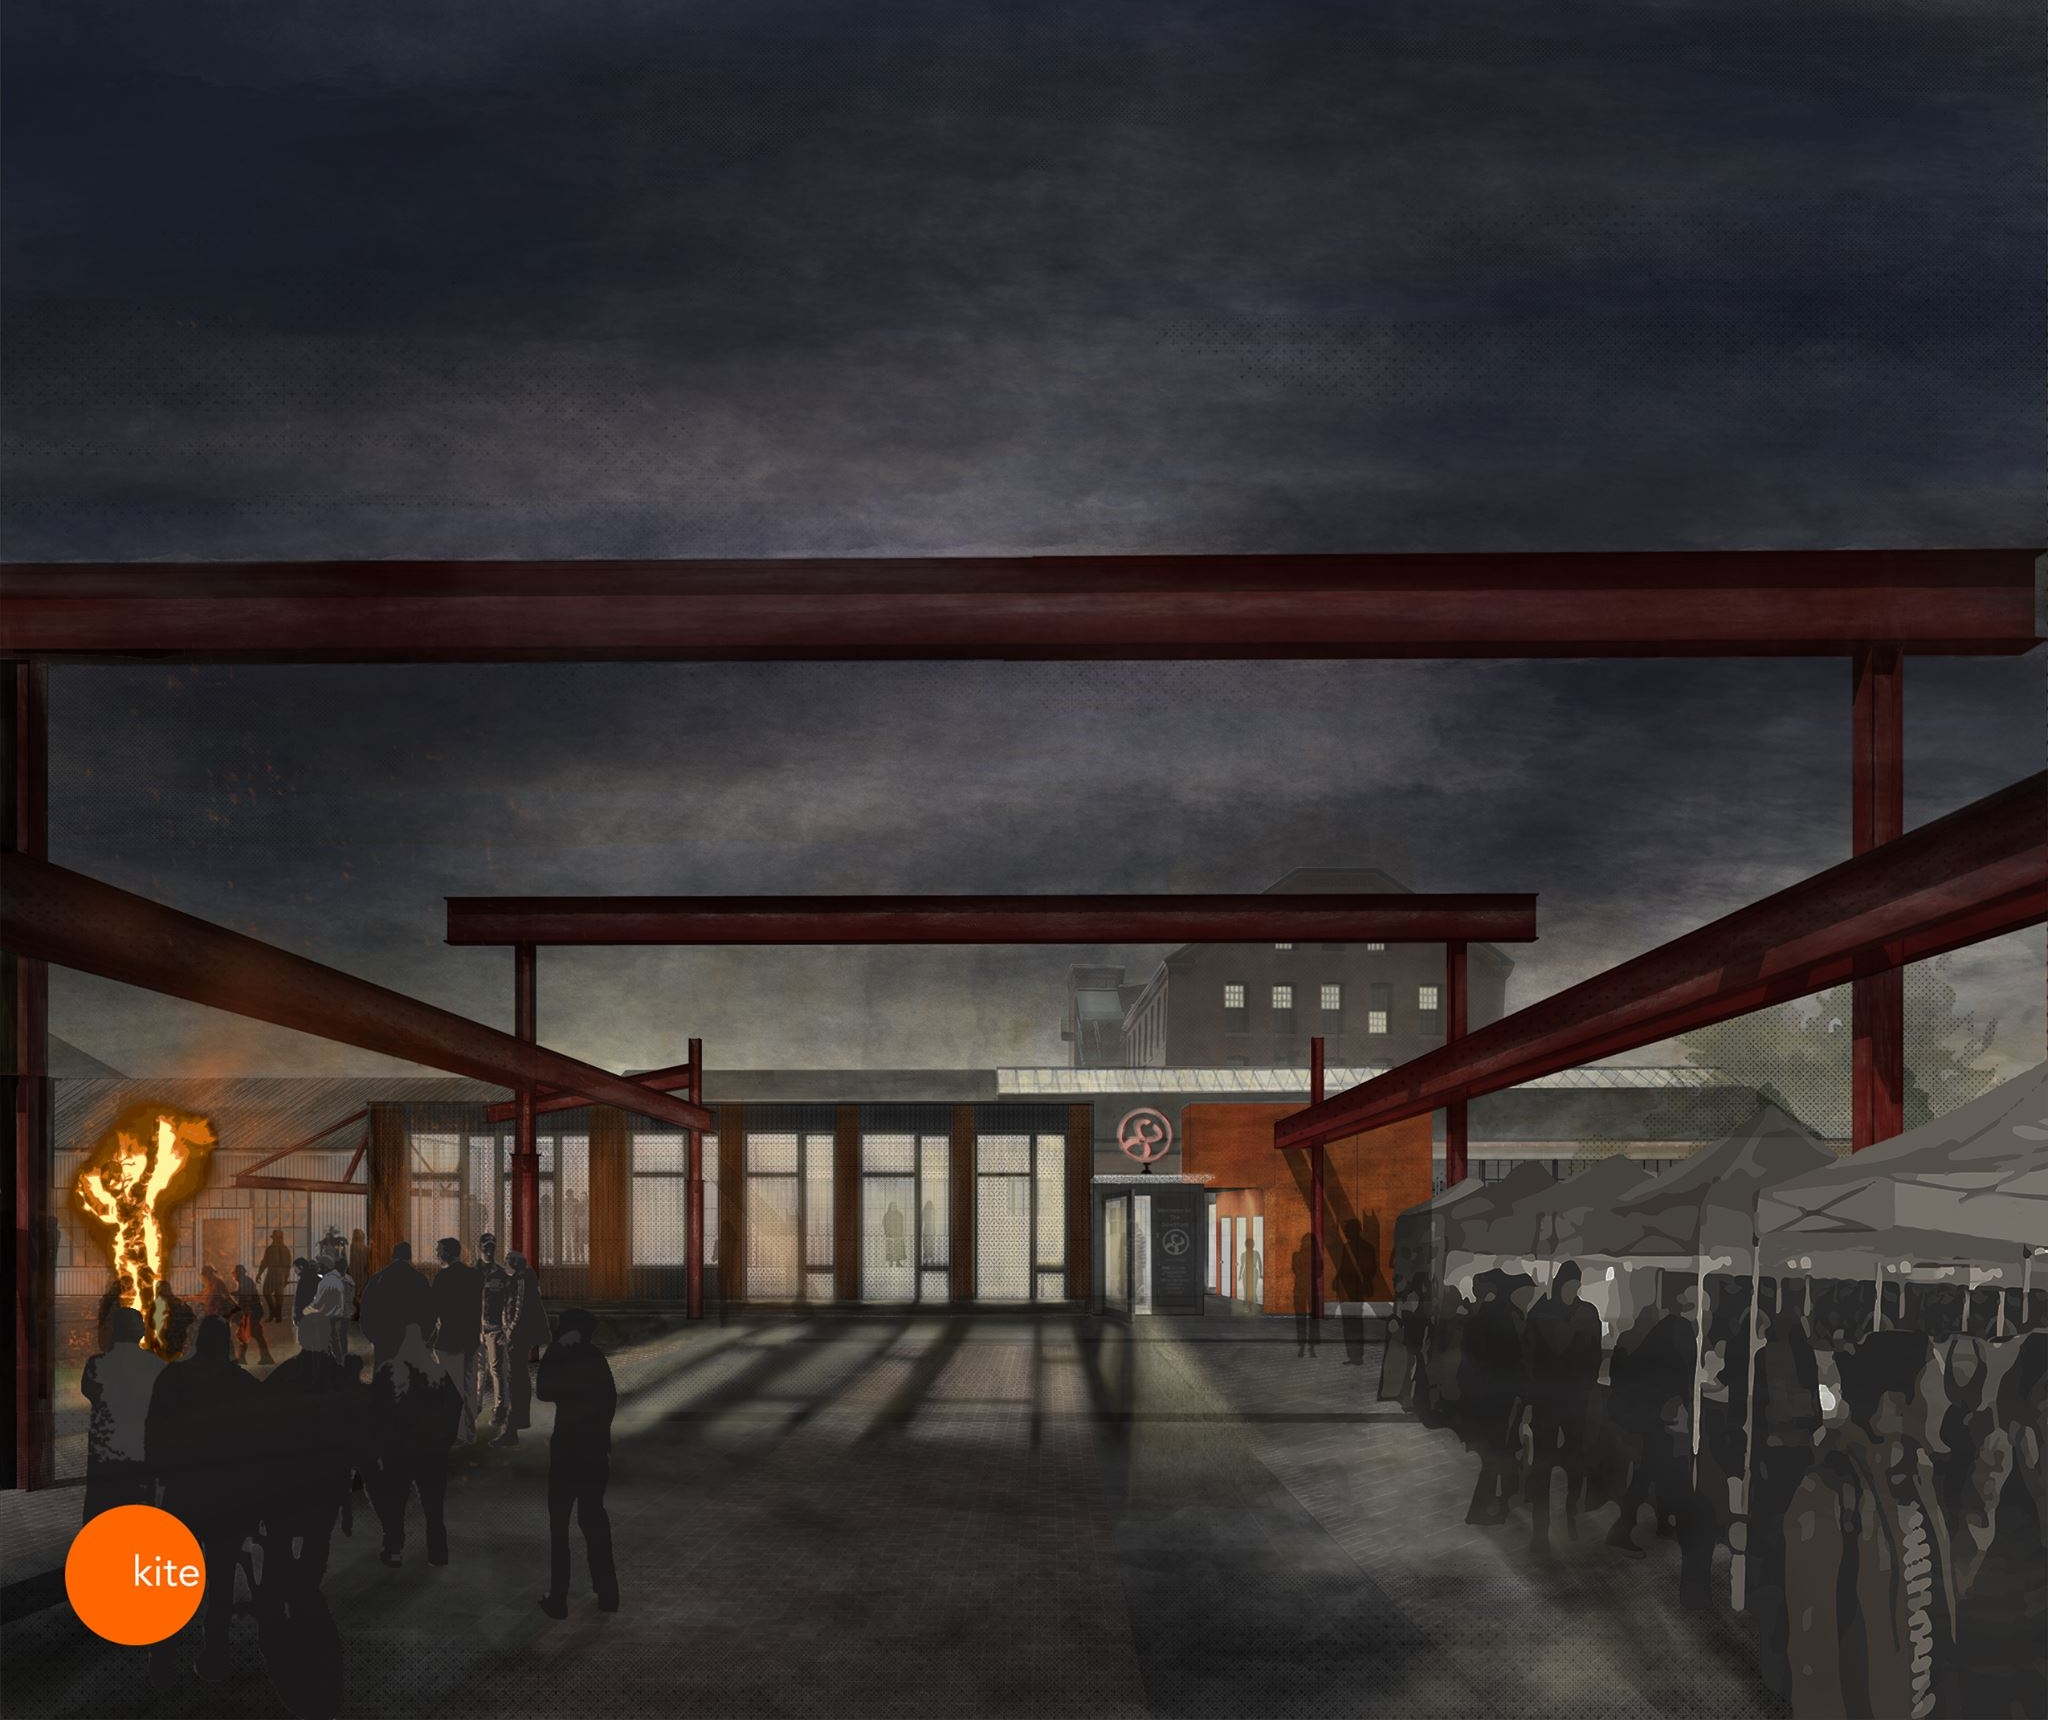 """Don't miss     KITE Architects at DESIGN WEEK RI 2018  ! The team at KITE is presenting an """"Scrappy Meets Savvy,"""" a lunch event on Tuesday, Sept 18. KITE Principals Christine West and Albert Garcia and   Steel Yard   Director Howie Sneider will discuss the design process of the new Steel Yard addition and renovation. See designweekri.com for more info!"""